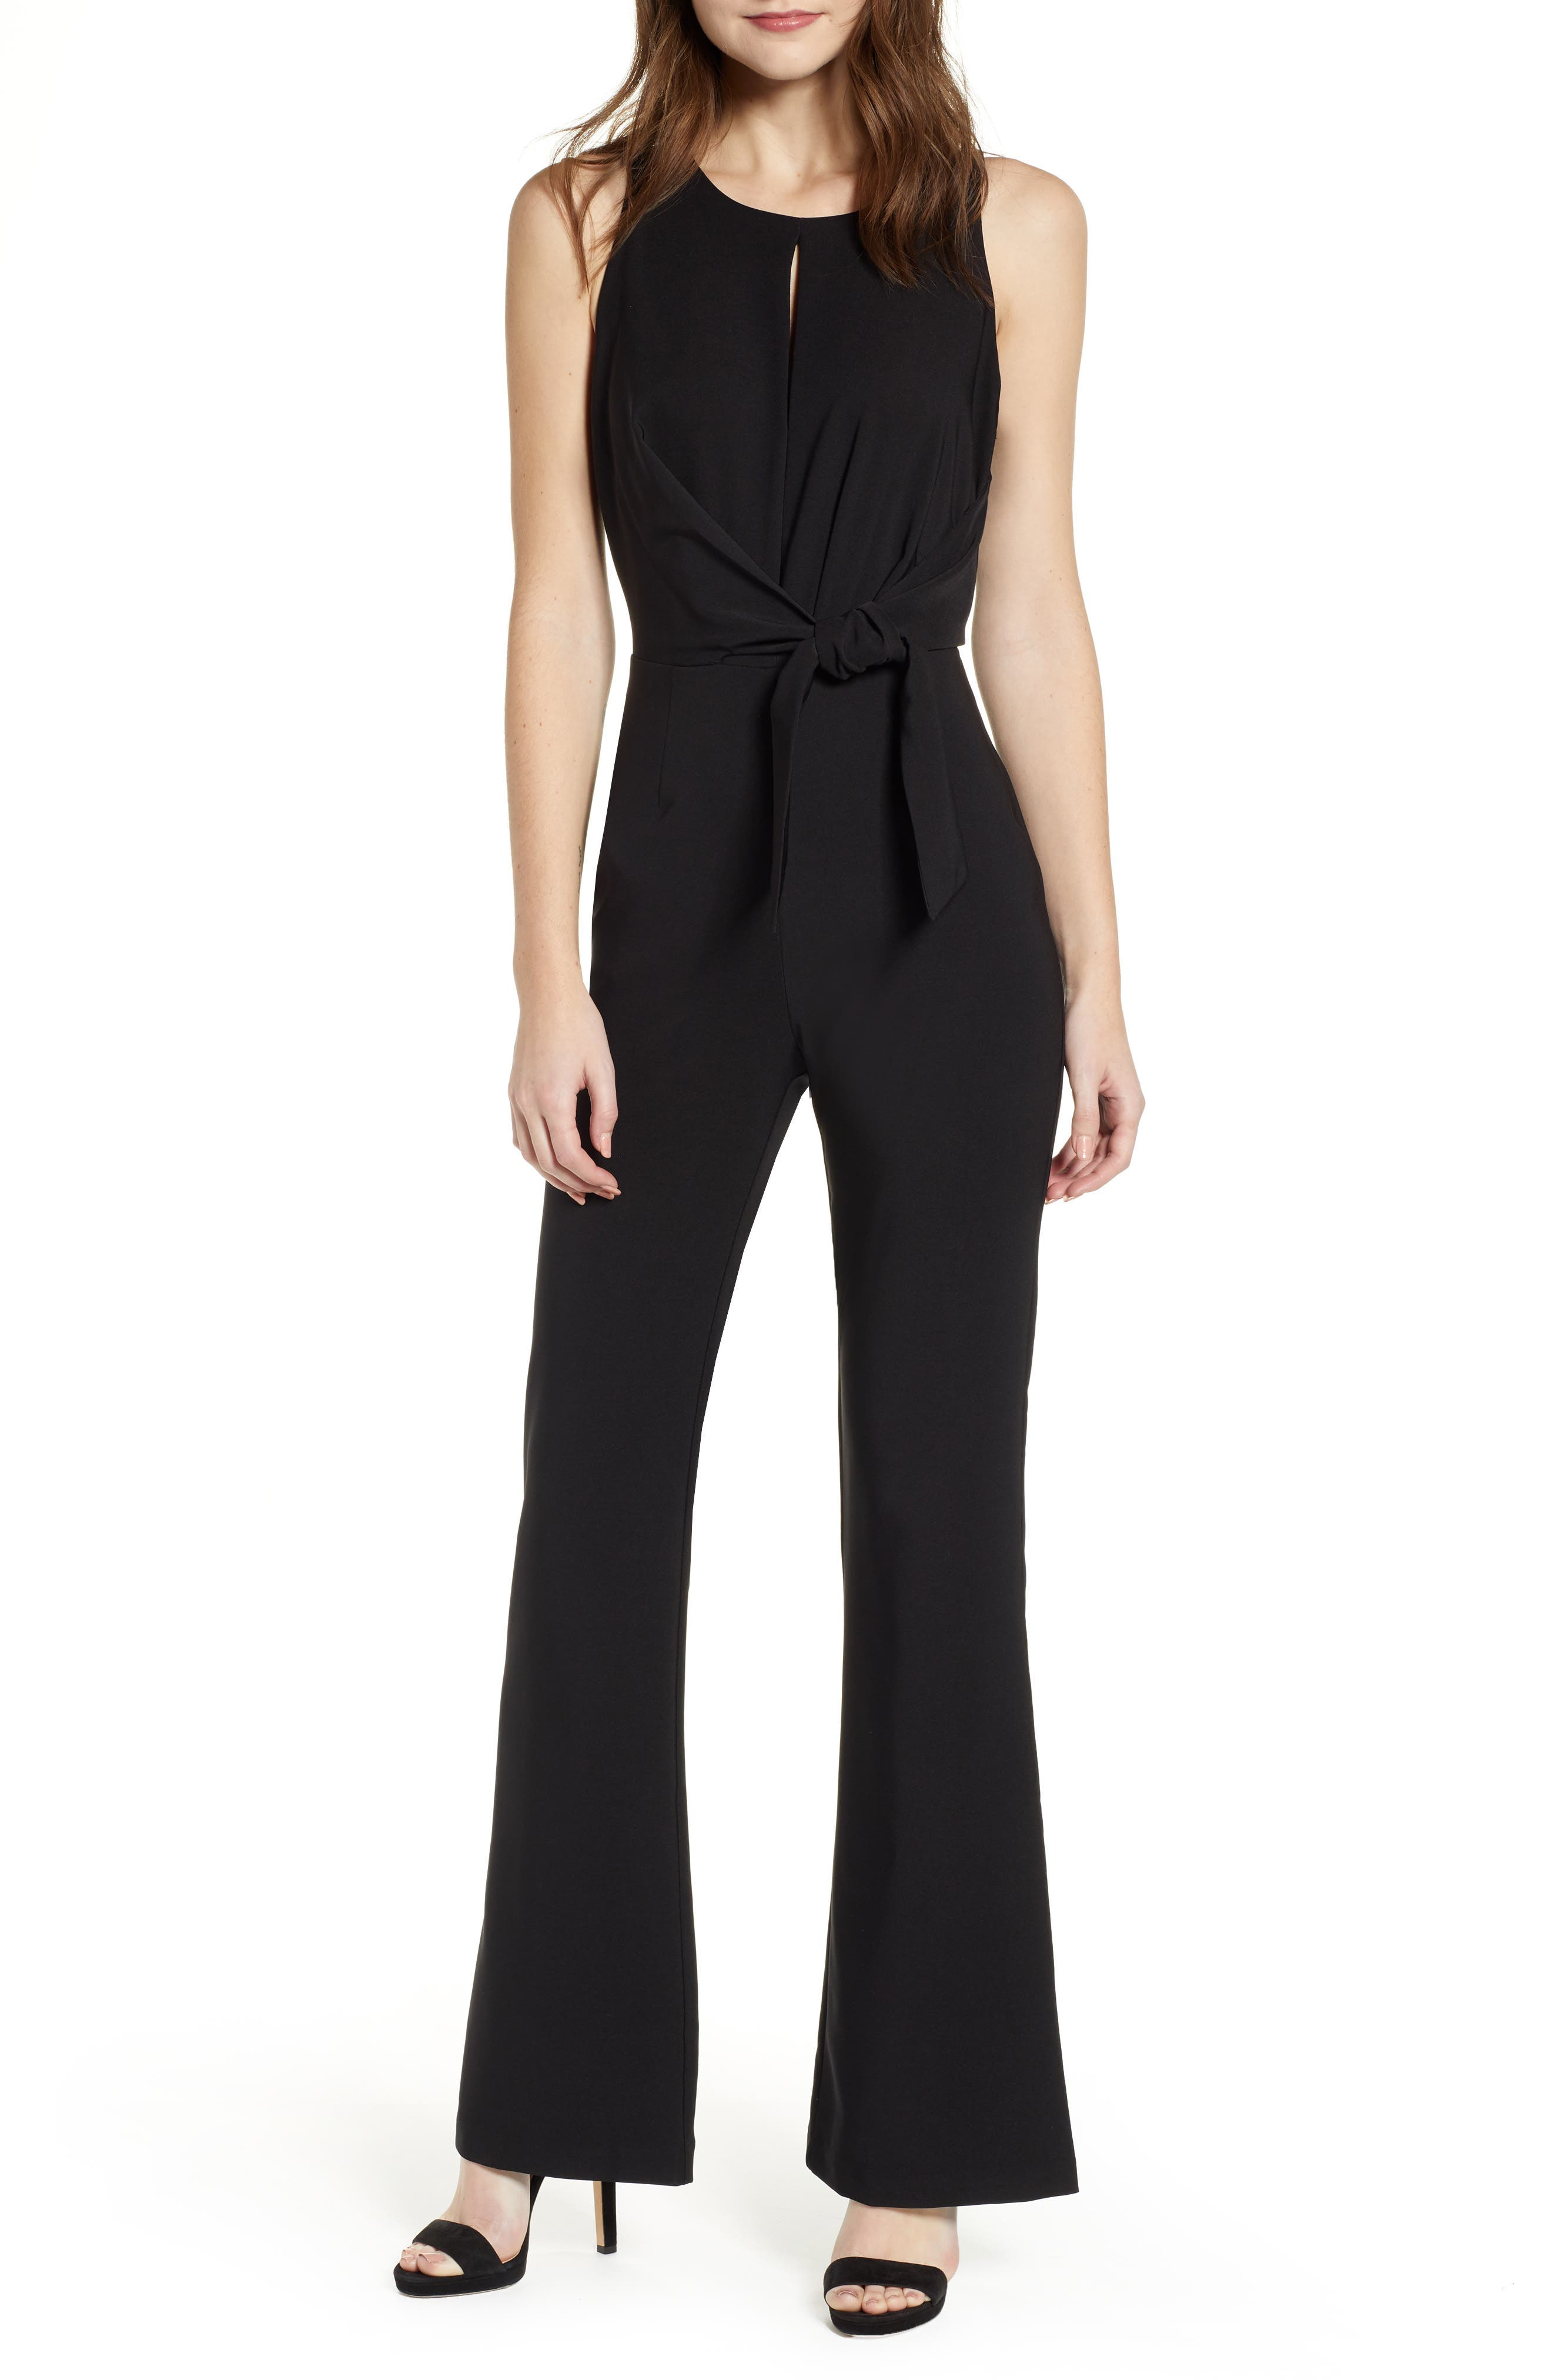 SOCIALITE, Tie Front Jumpsuit, Main thumbnail 1, color, BLACK